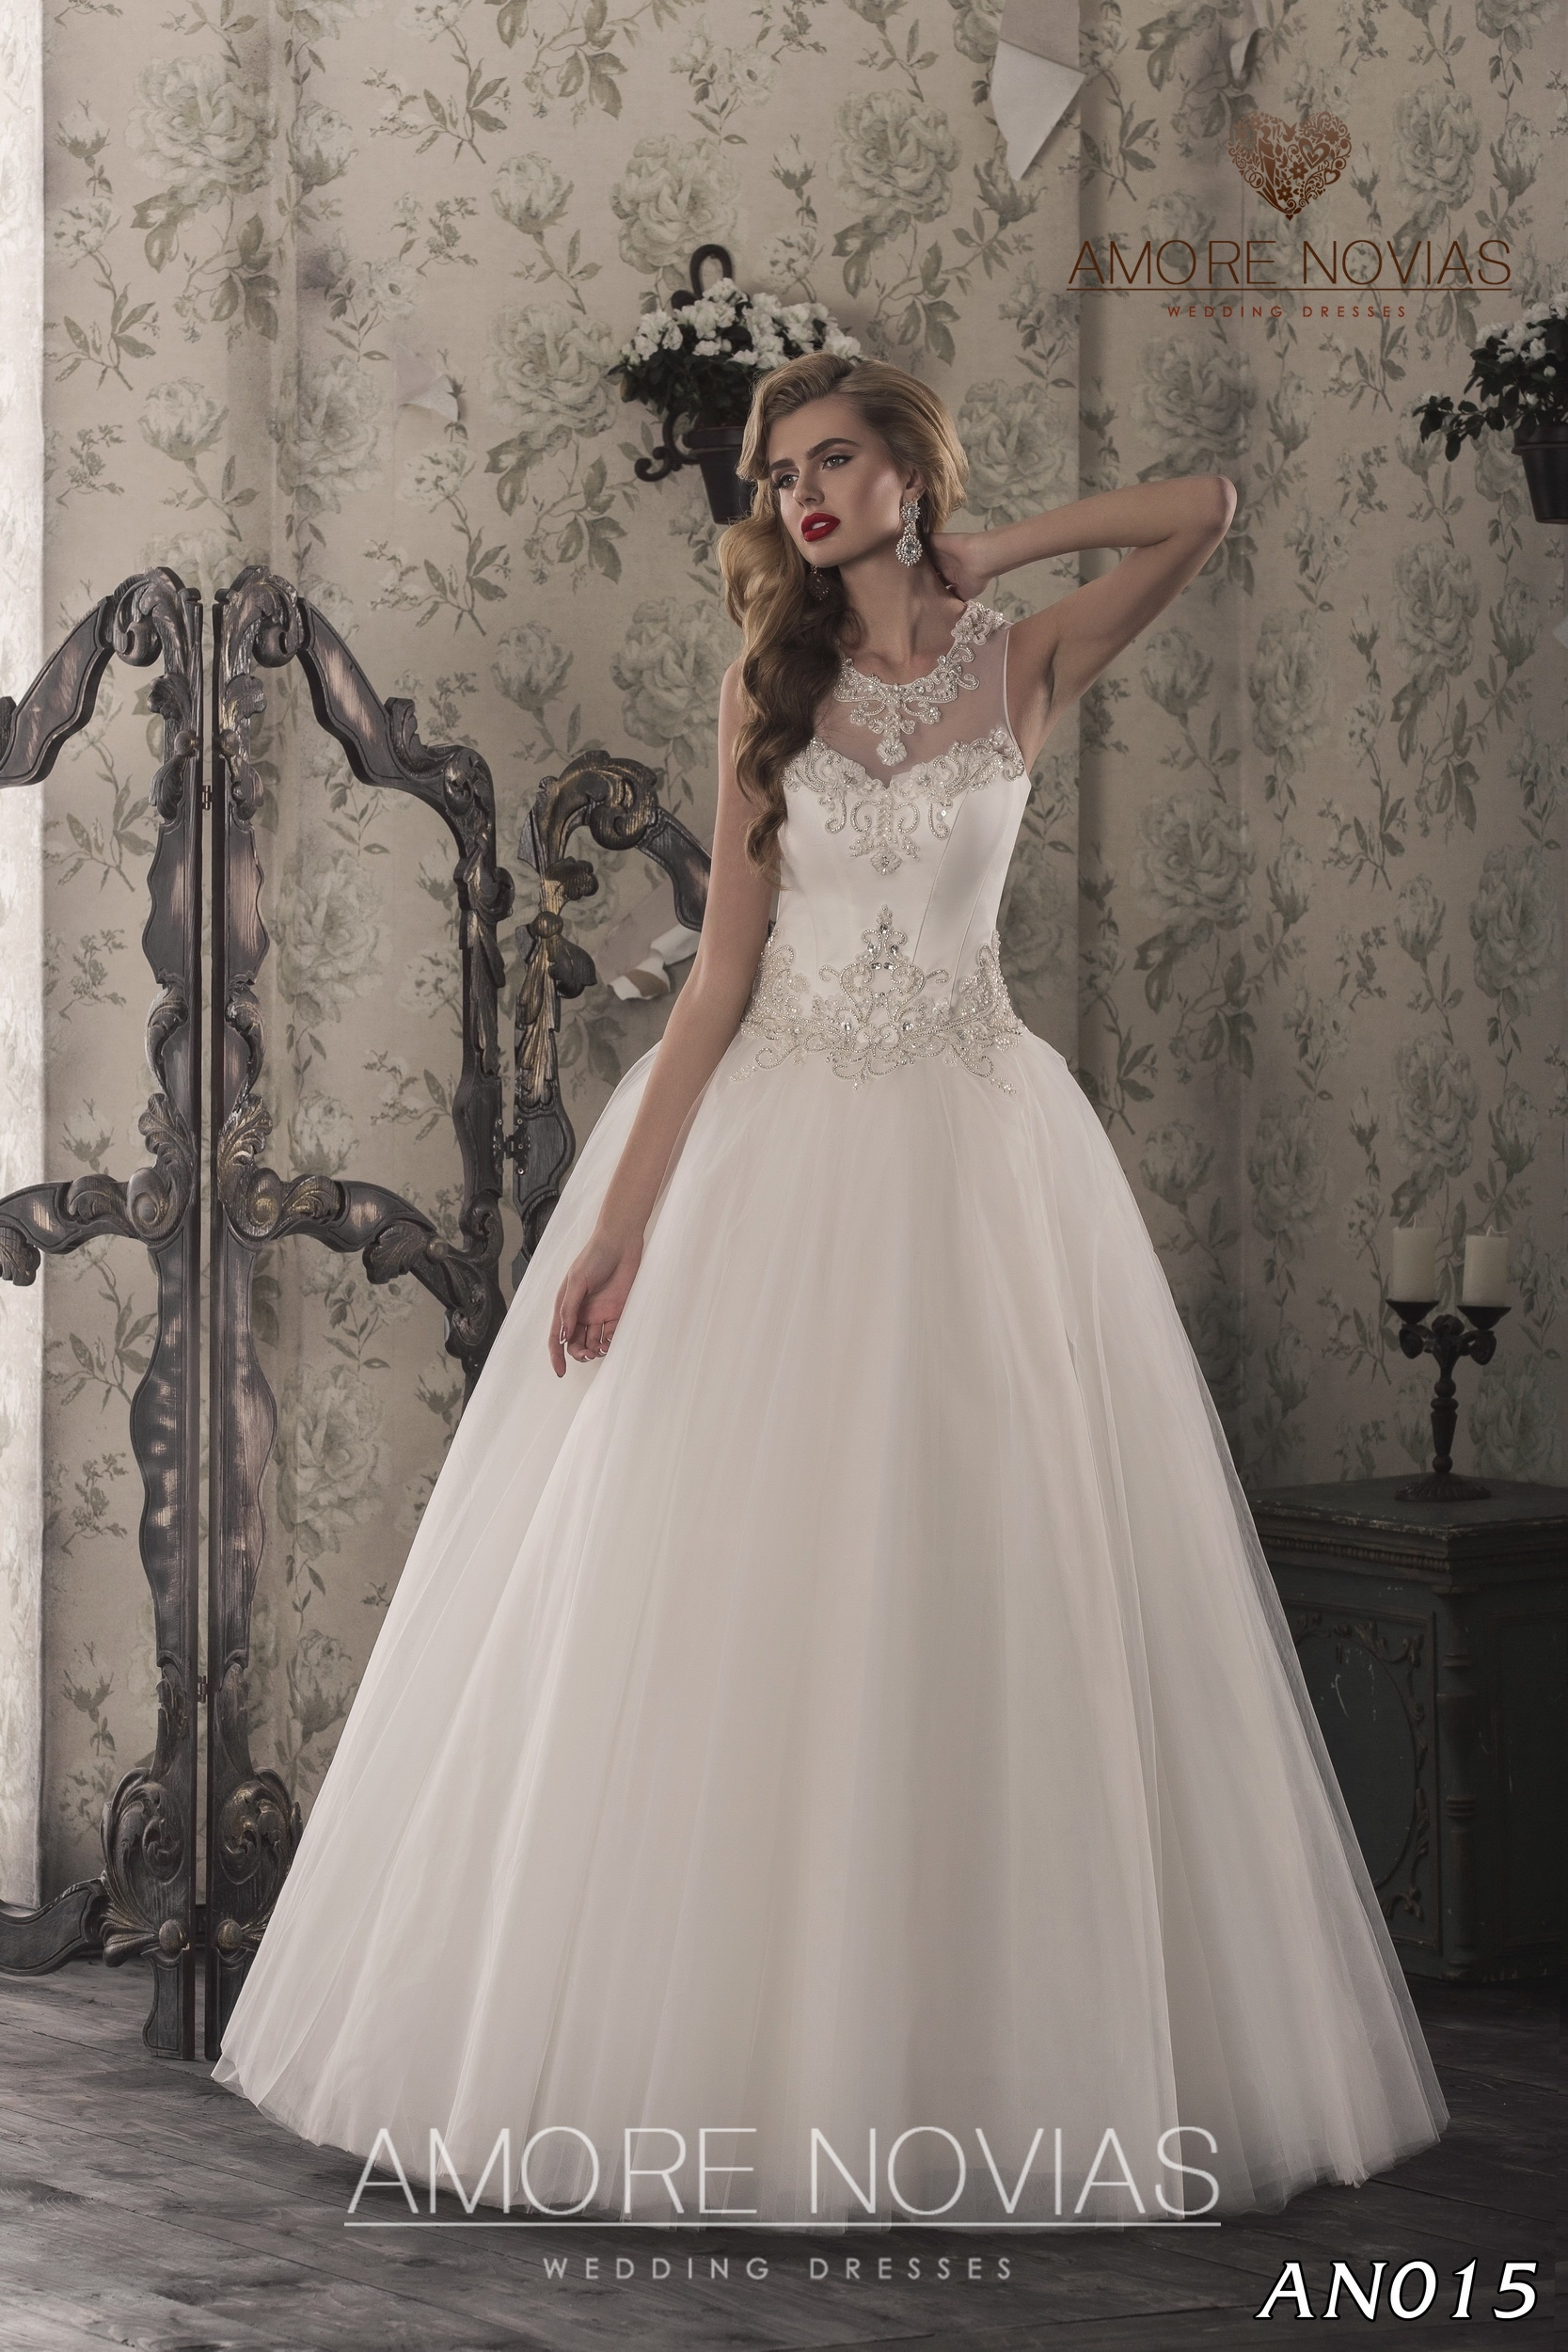 https://amore-novias.com/images/stories/virtuemart/product/an015.jpg